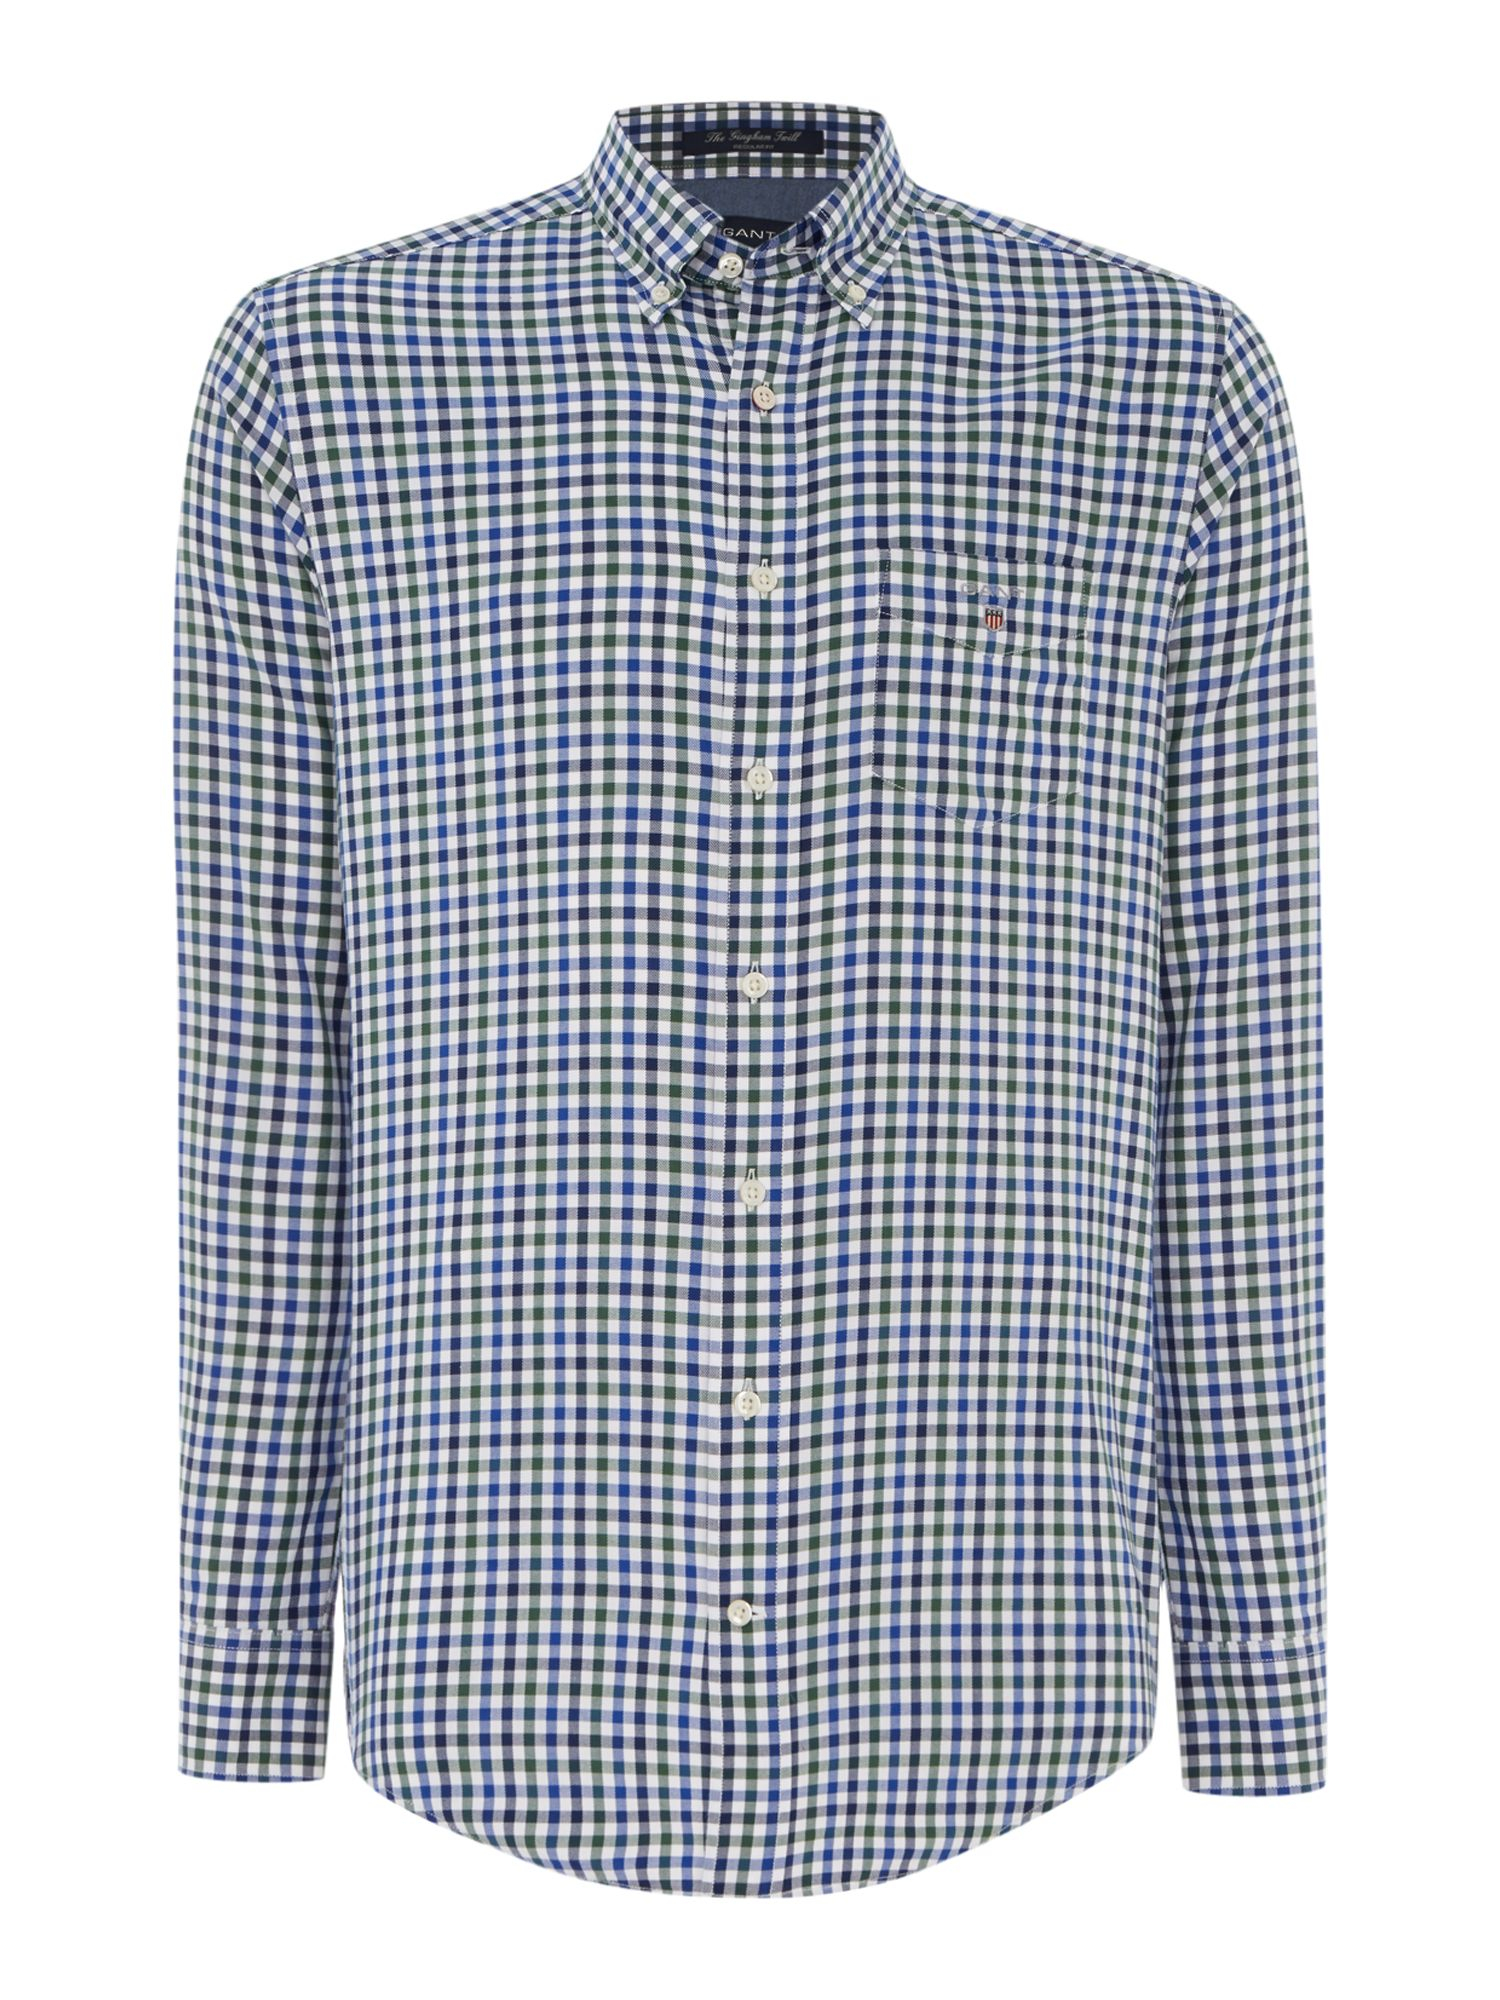 Gant gingham twill classic shirt in green for men lyst for Red and green checked shirt